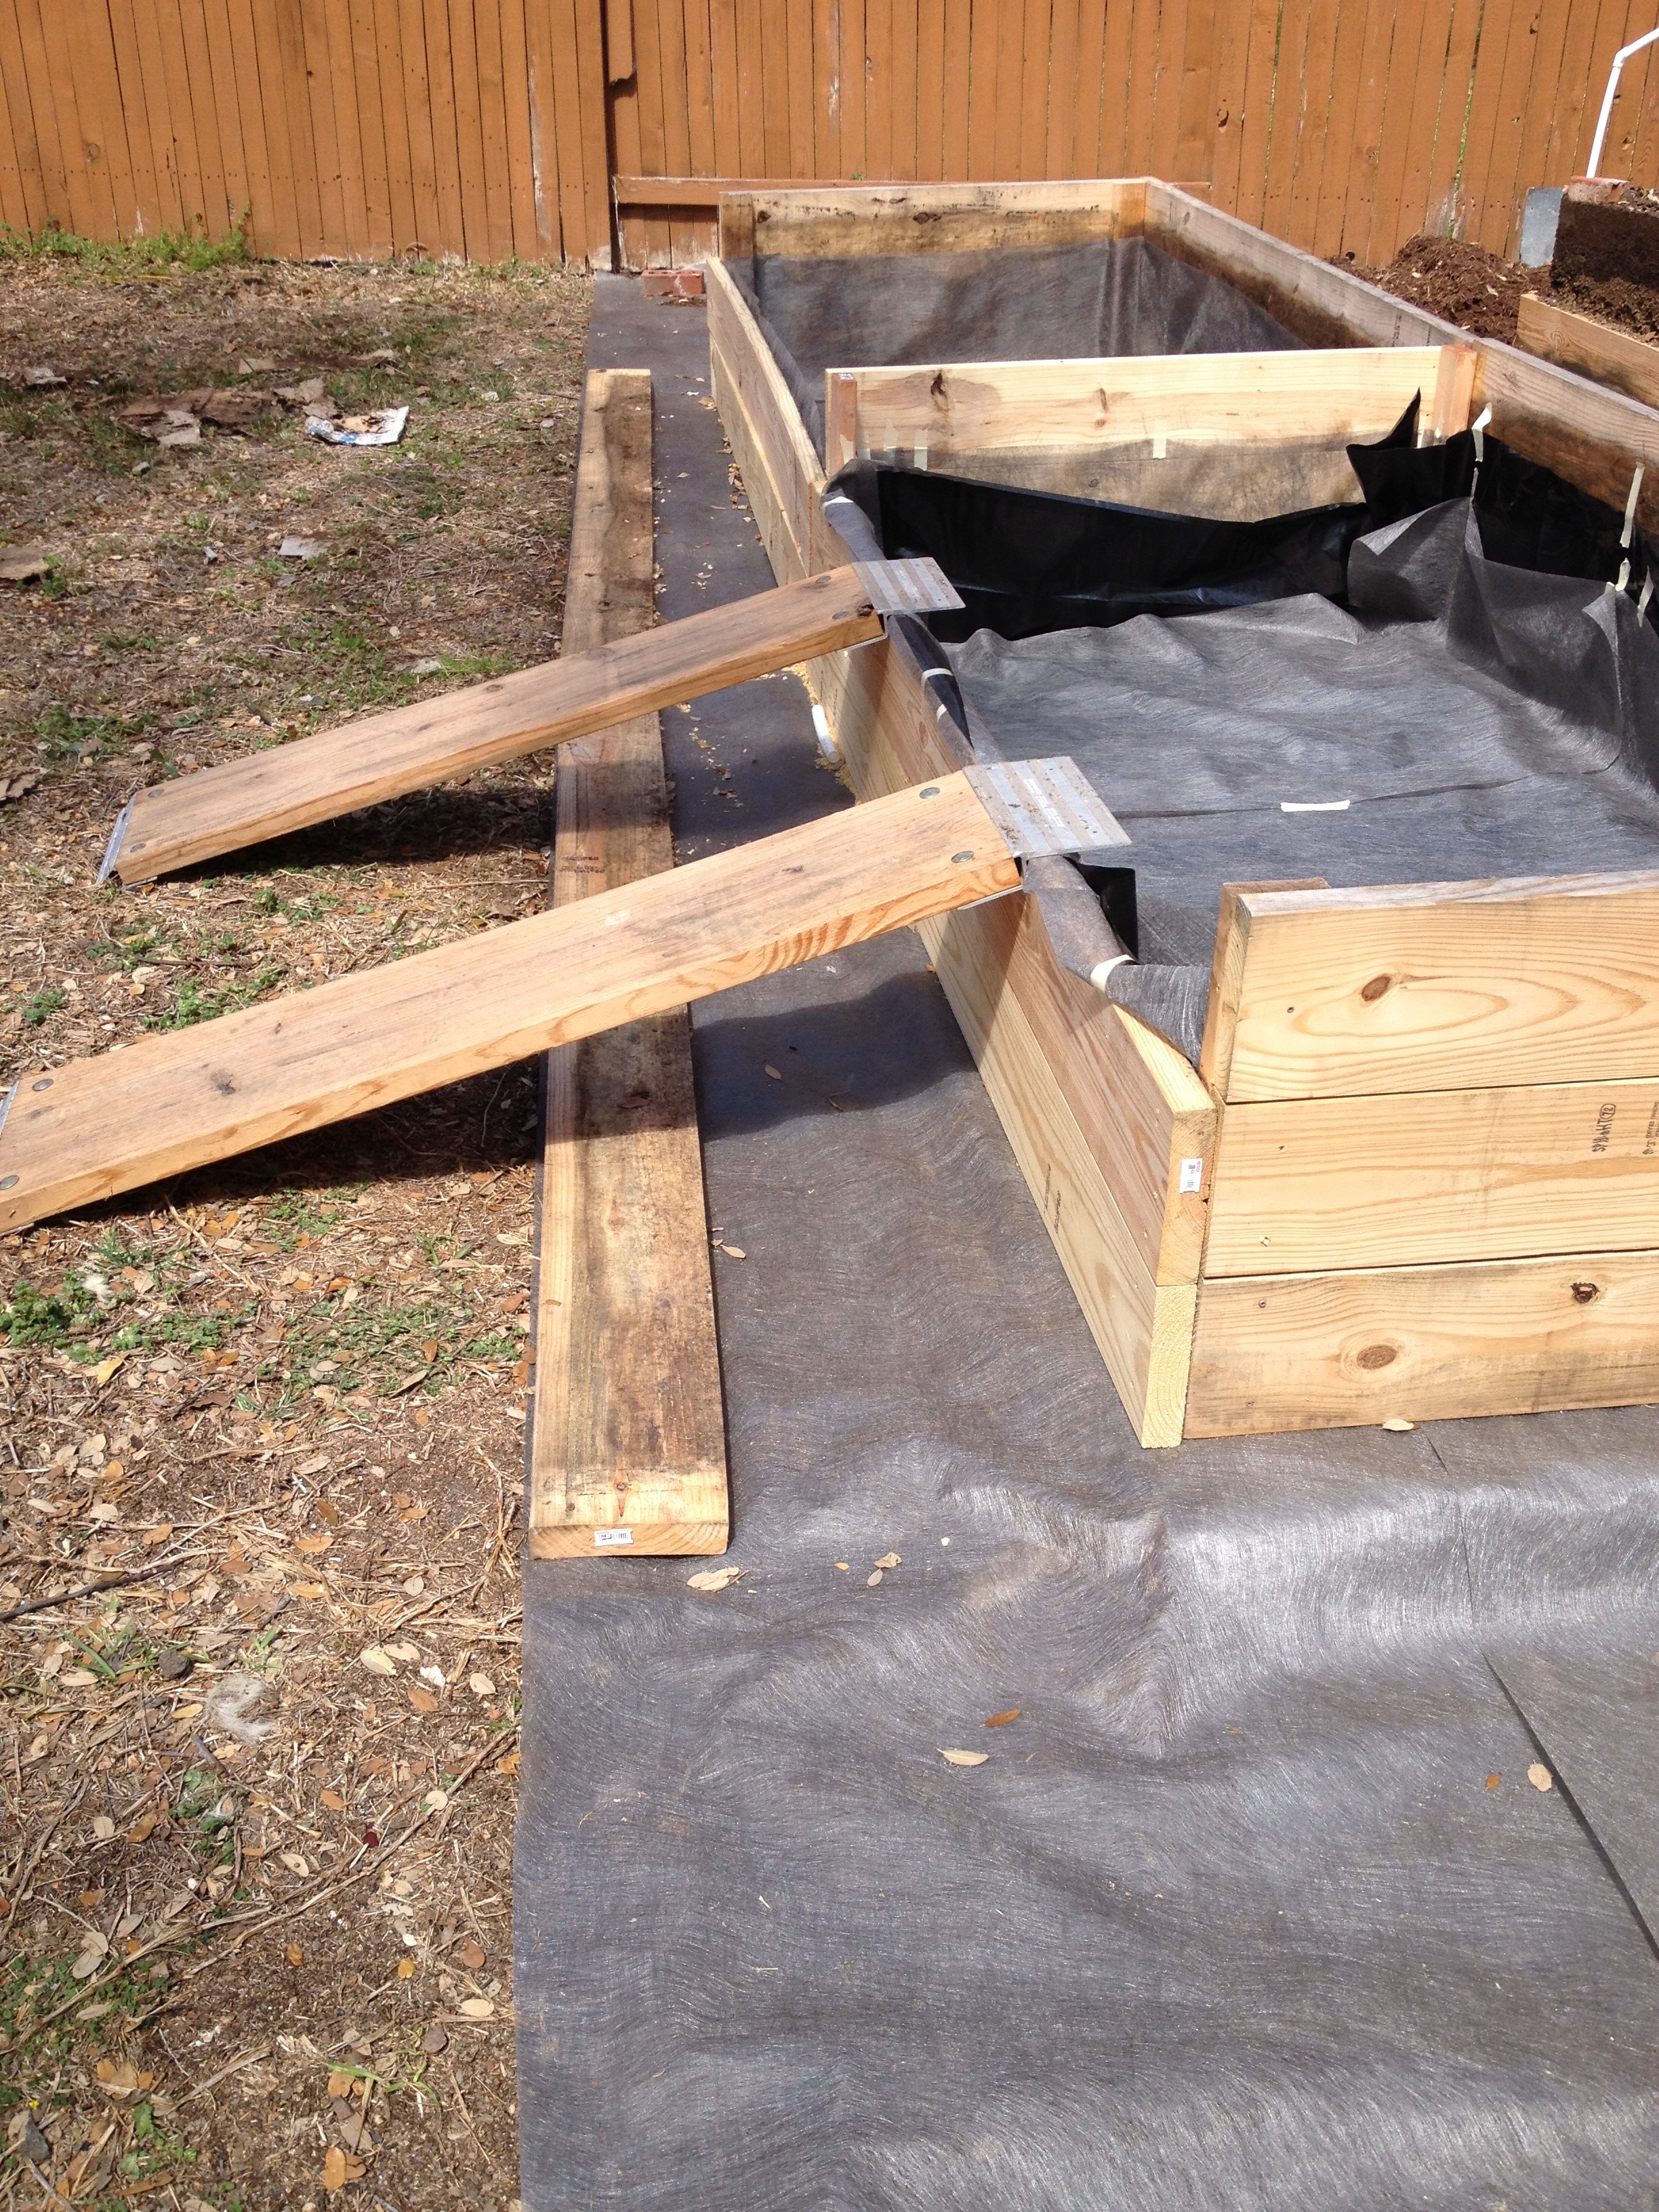 Ramps to use for the wheelbarrow